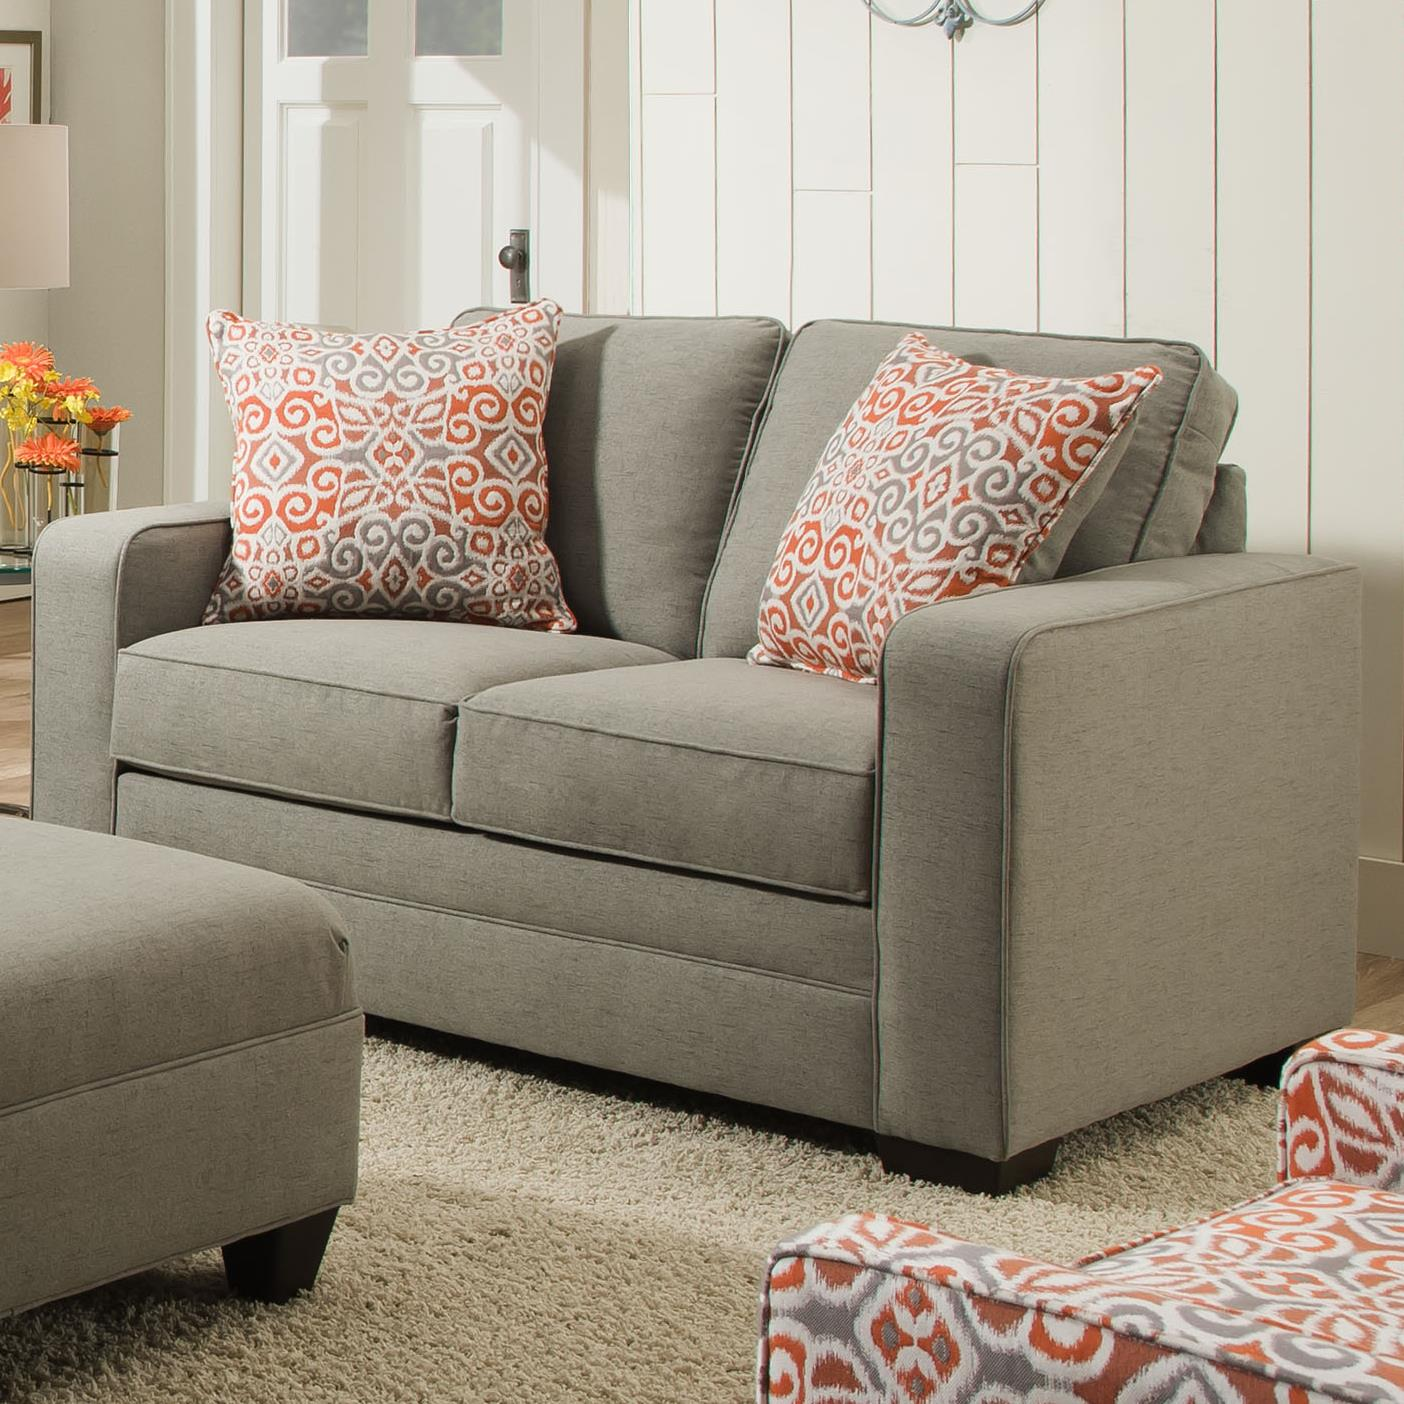 United Furniture Industries 9064 United Loveseat - Item Number: 9064Loveseat-AshMiramar